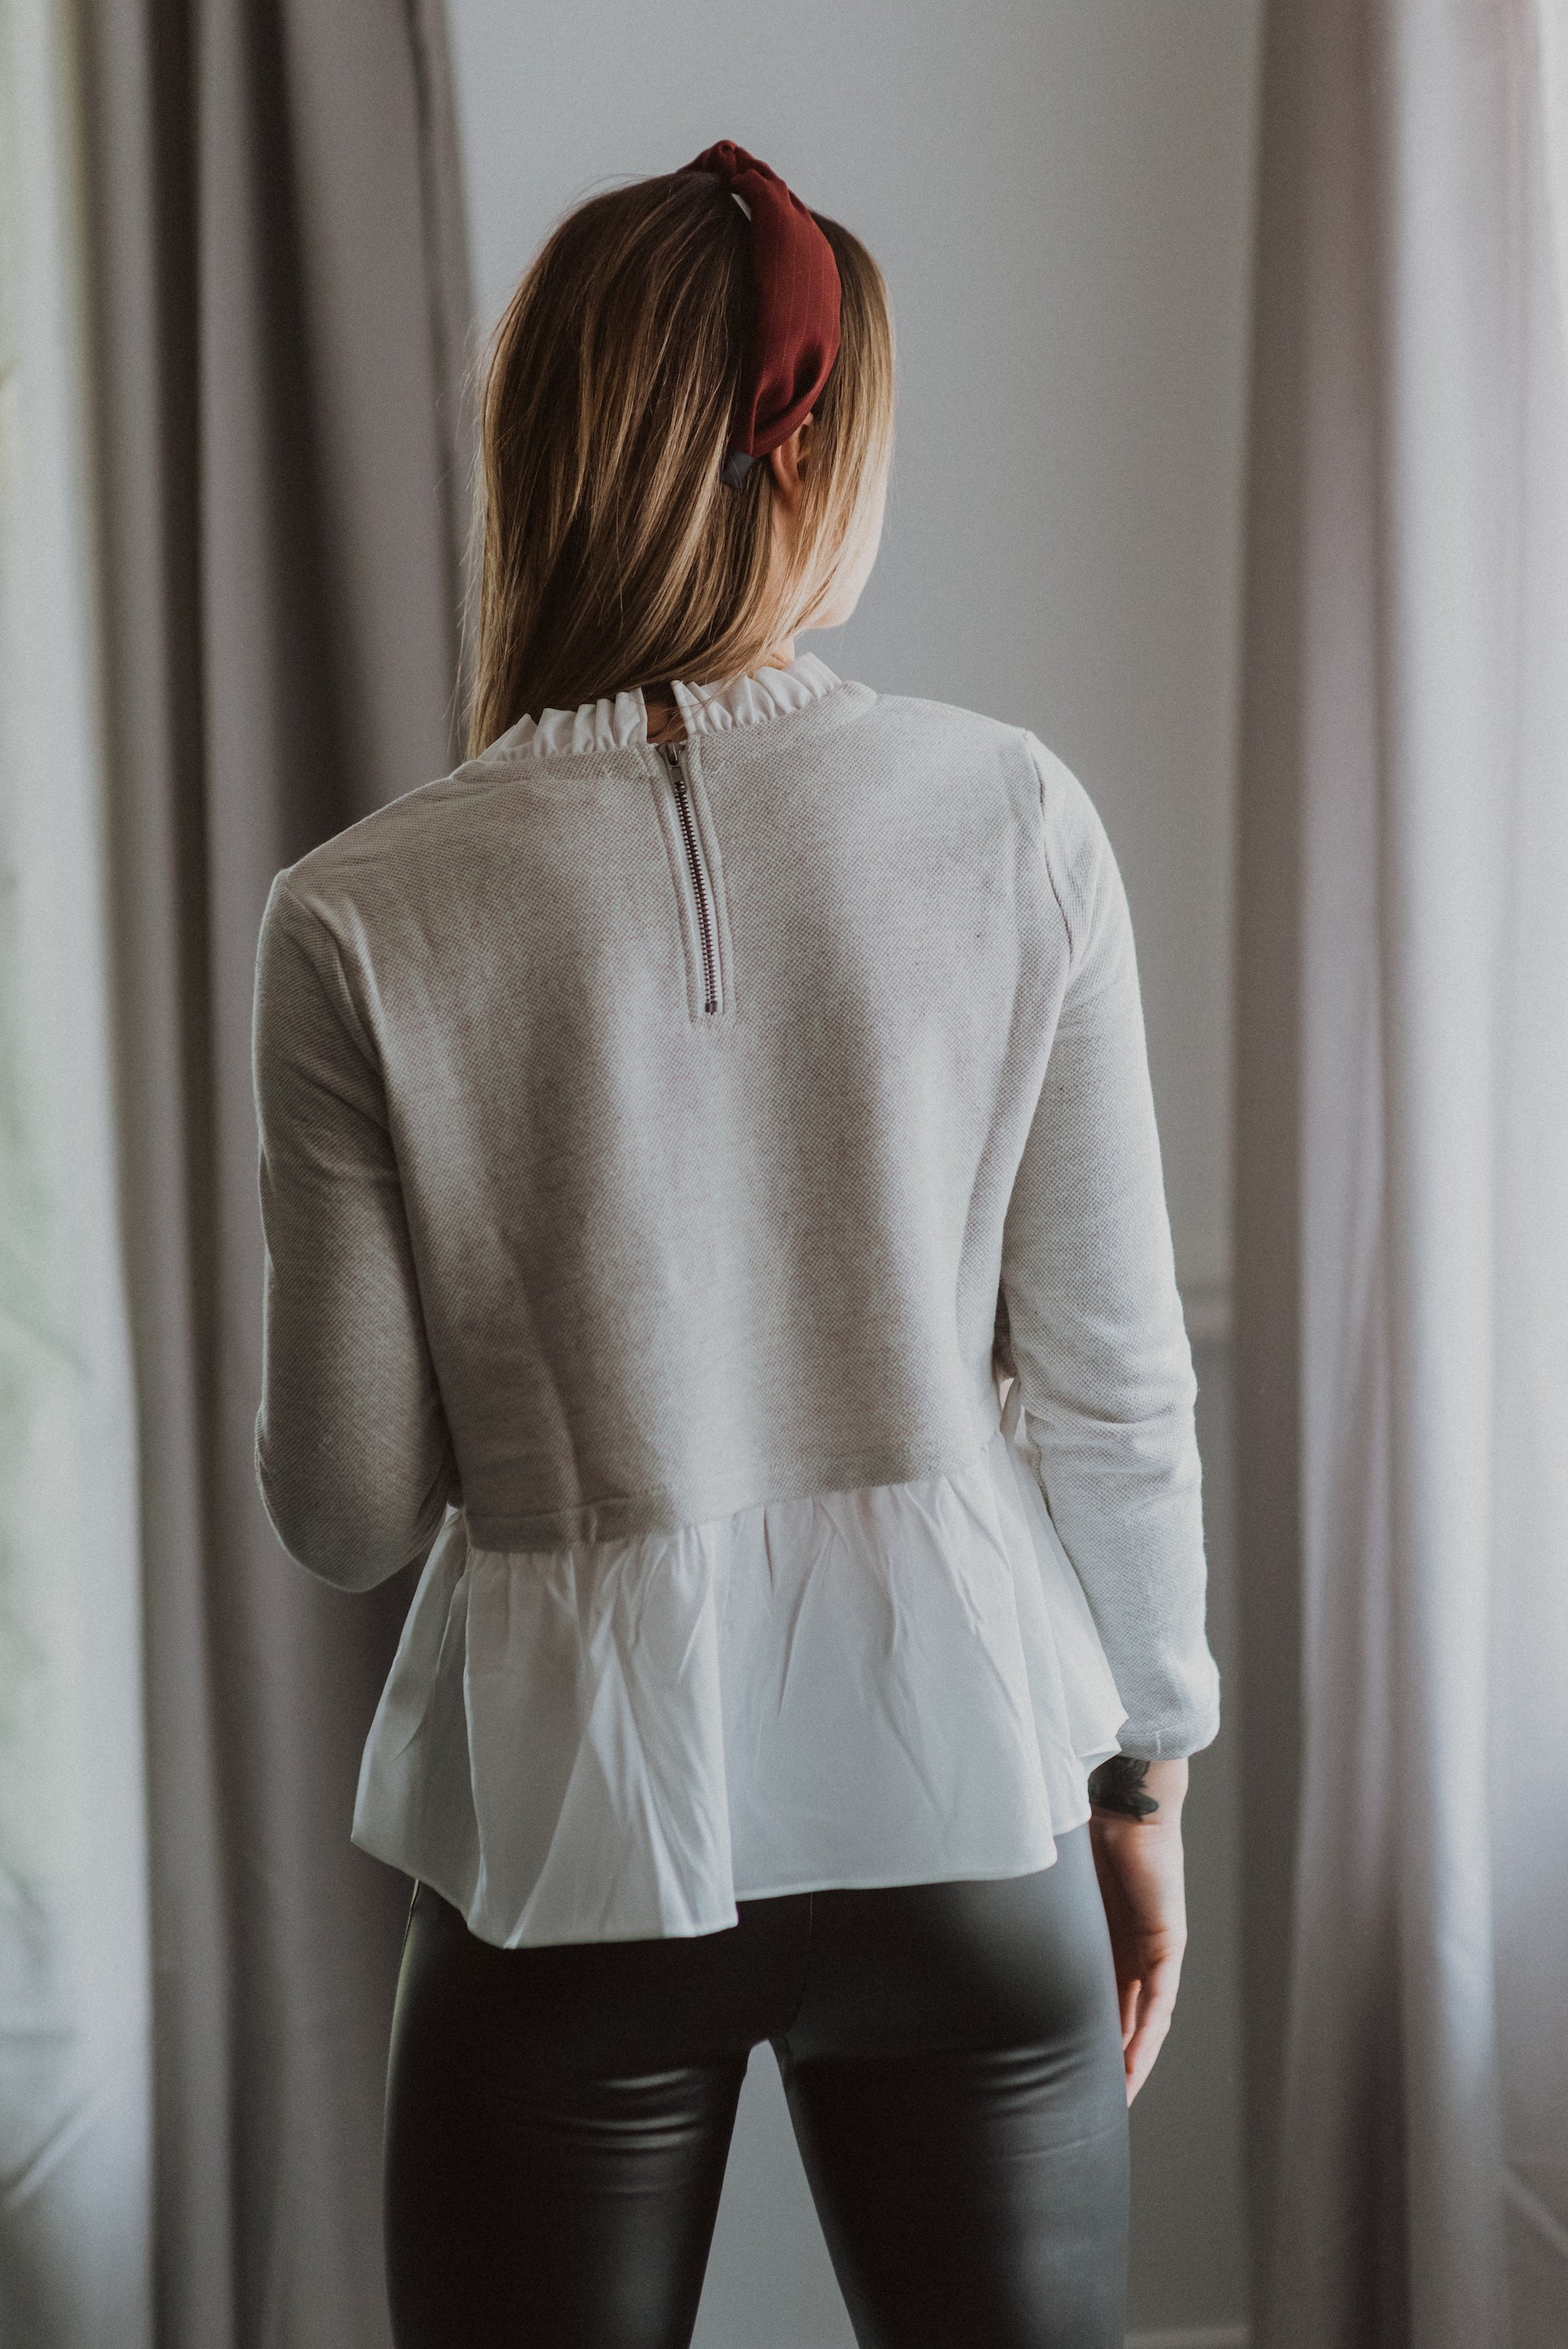 Prepped For the Day Layered Top